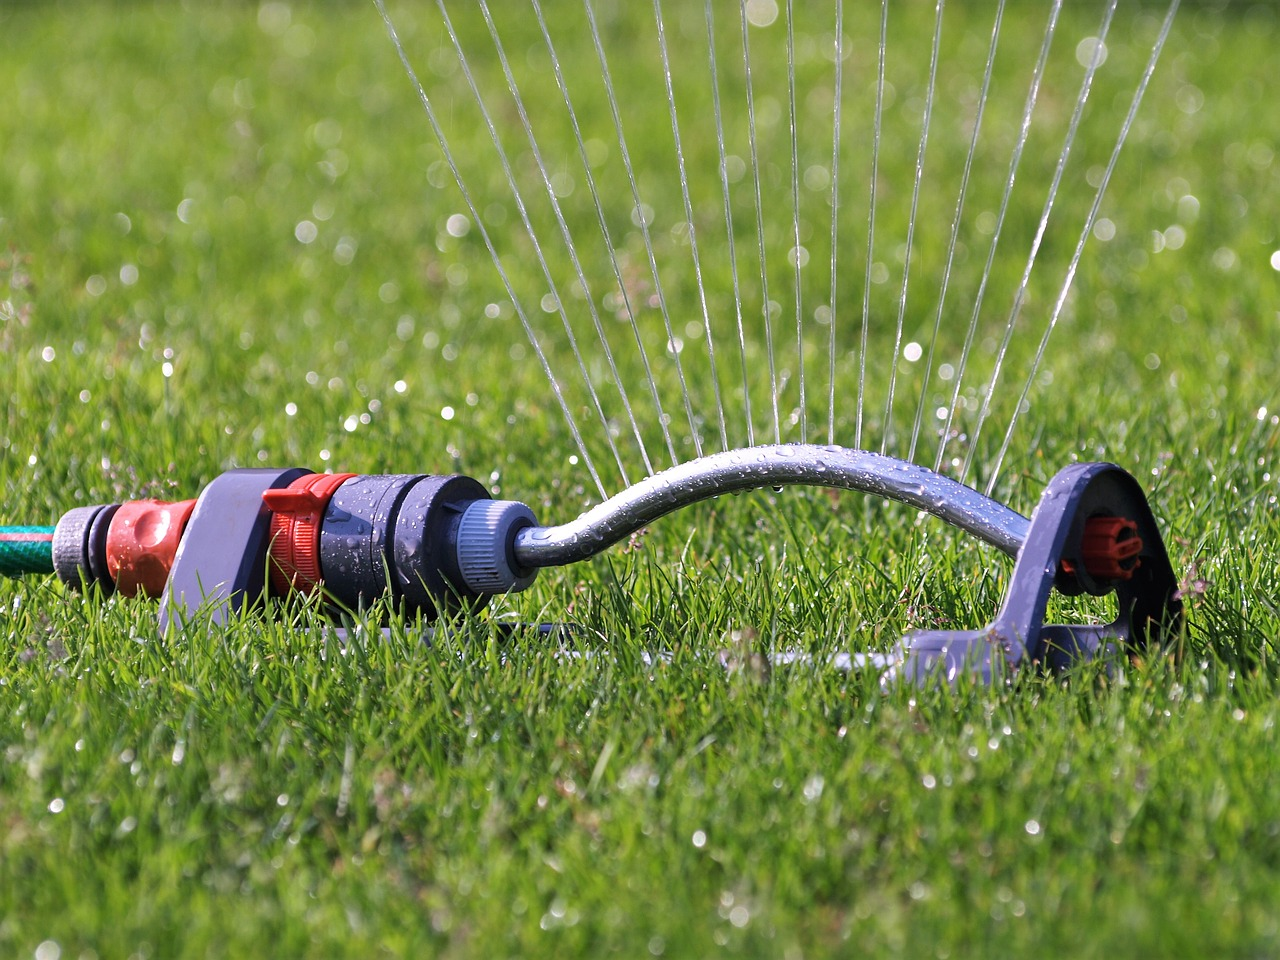 A close up photo of a rotating sprinkler on the grass.